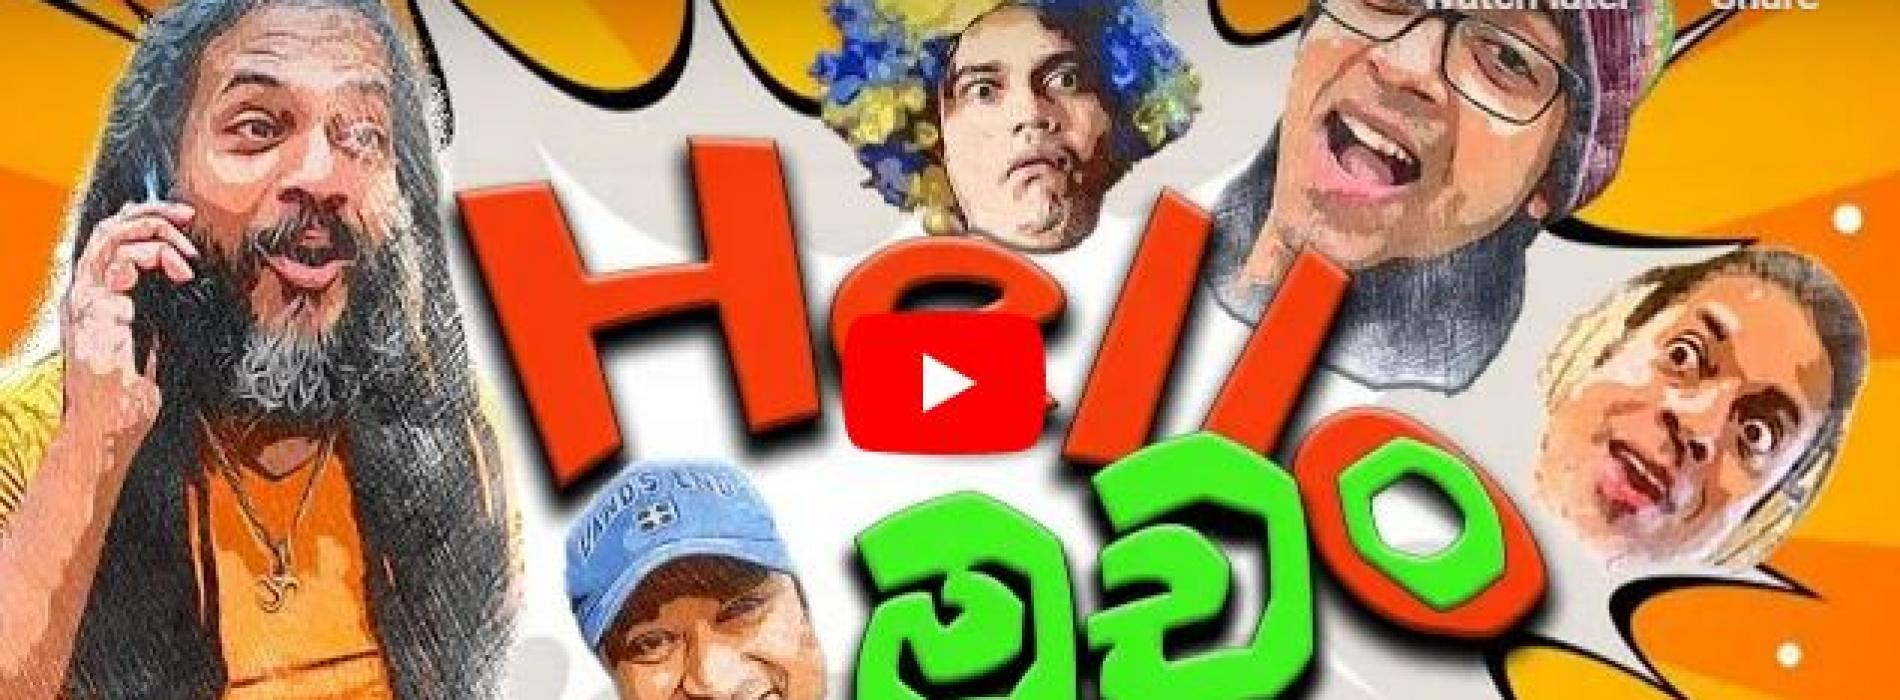 New Music : Hello Machang Music Video (Official) – By Shaman Ranaweera and Friends